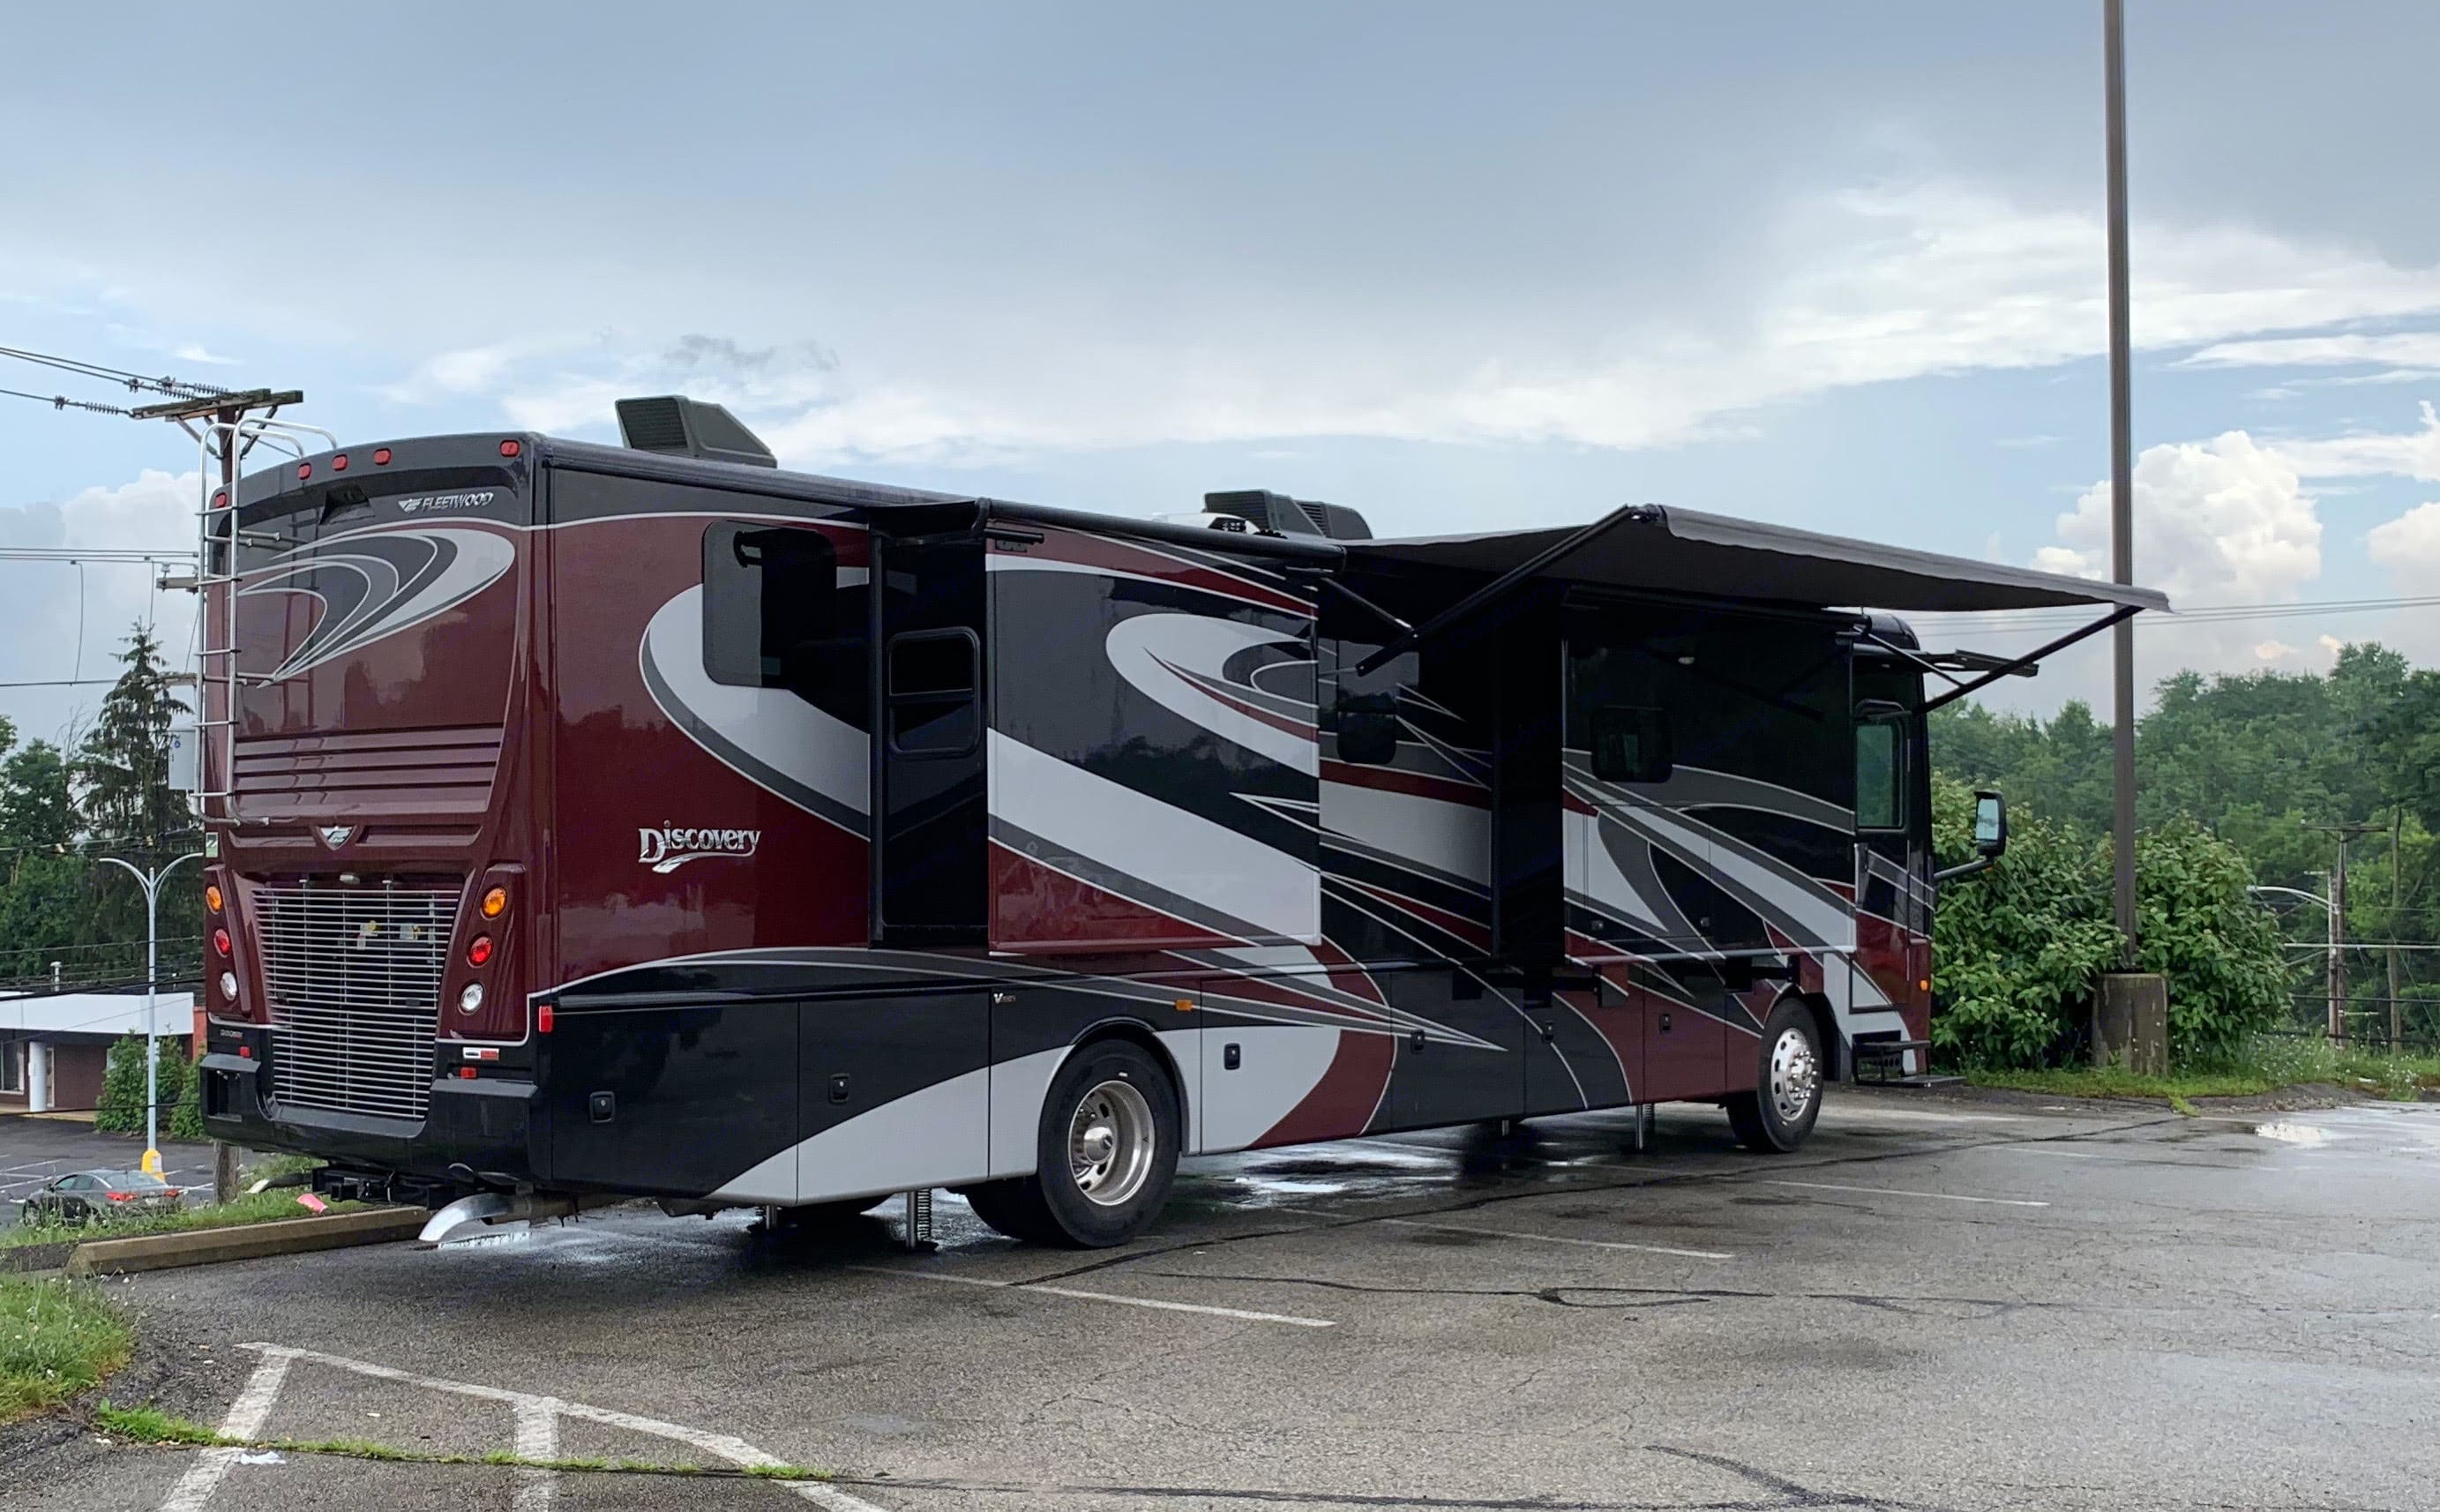 Exterior has lighted awnings and exterior entertainment center. Fleetwood Discovery 2019